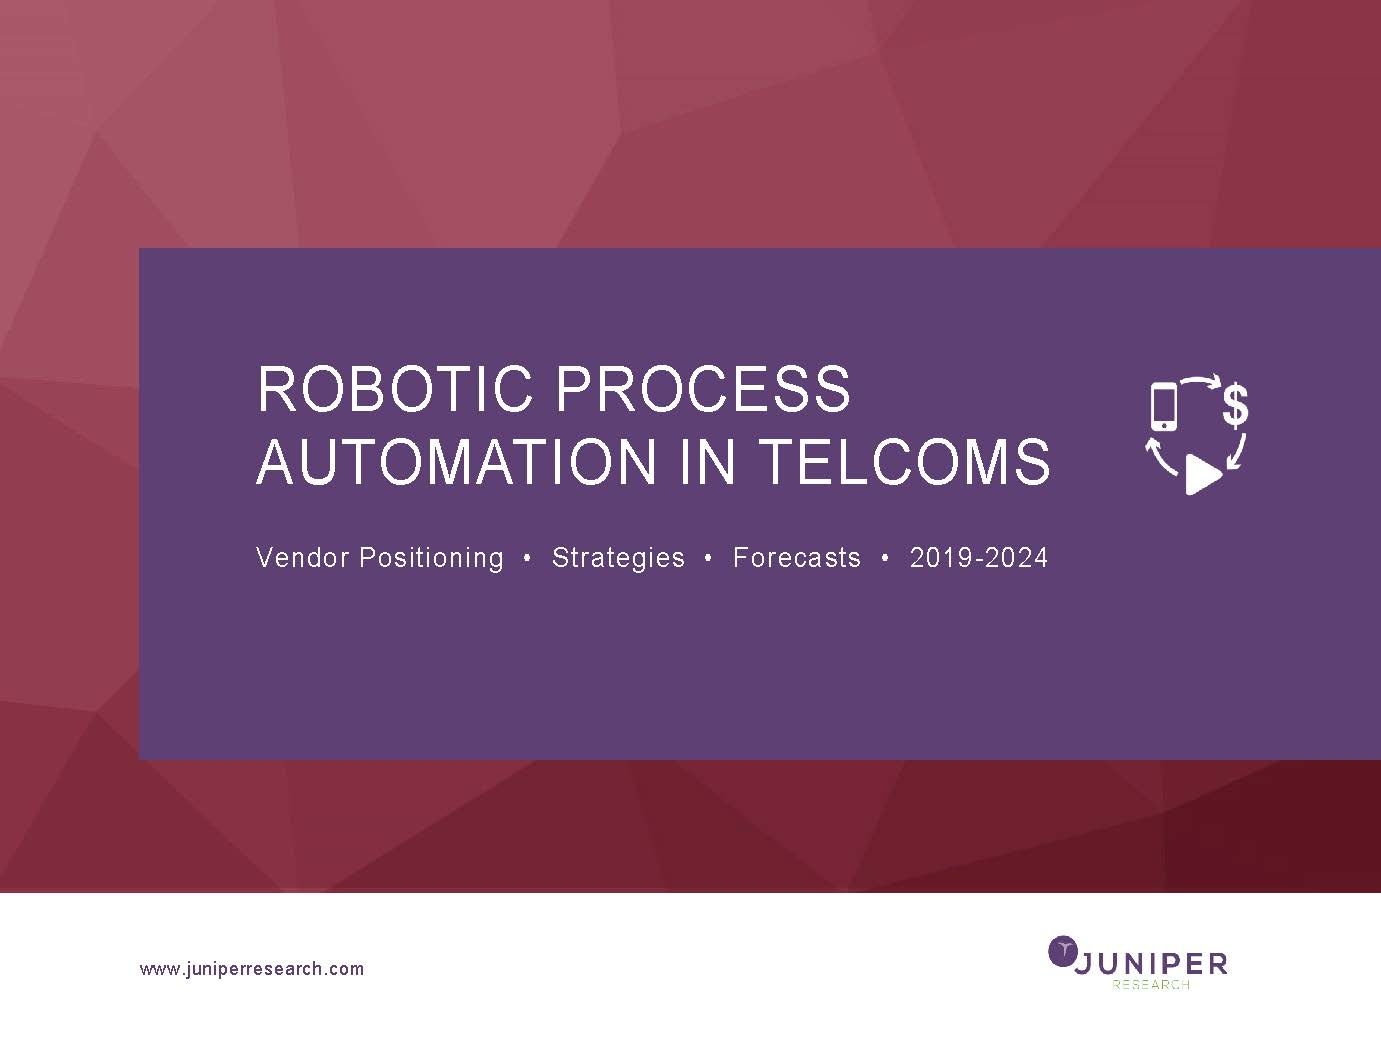 Robotic Process Automation in Telecoms